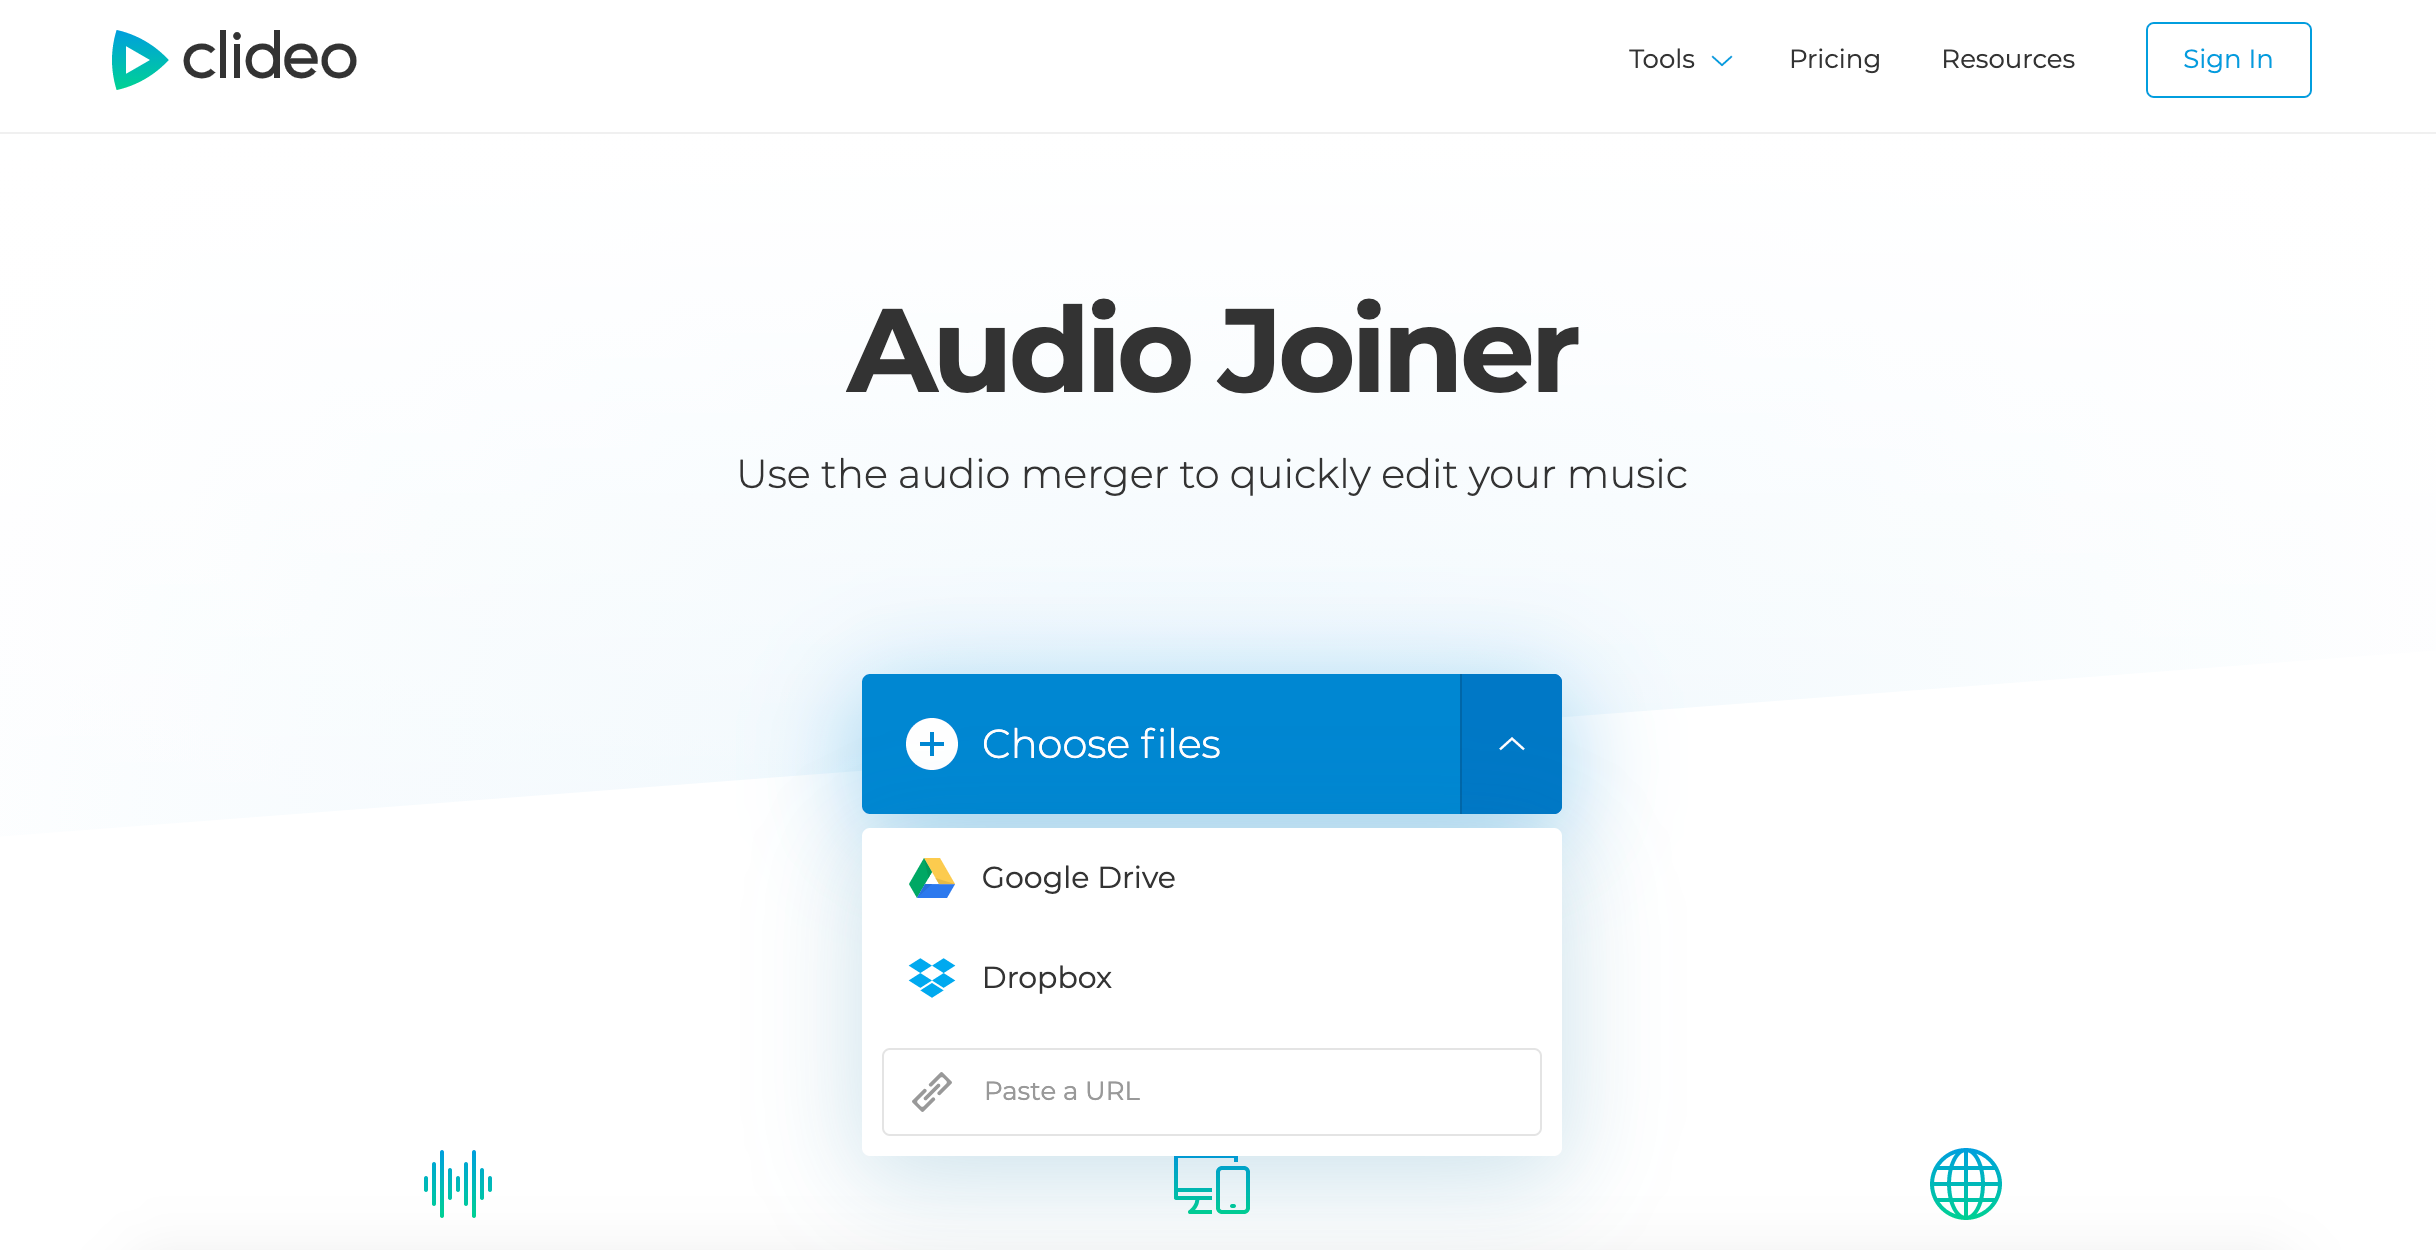 Add an MP3 or other audio files to combine